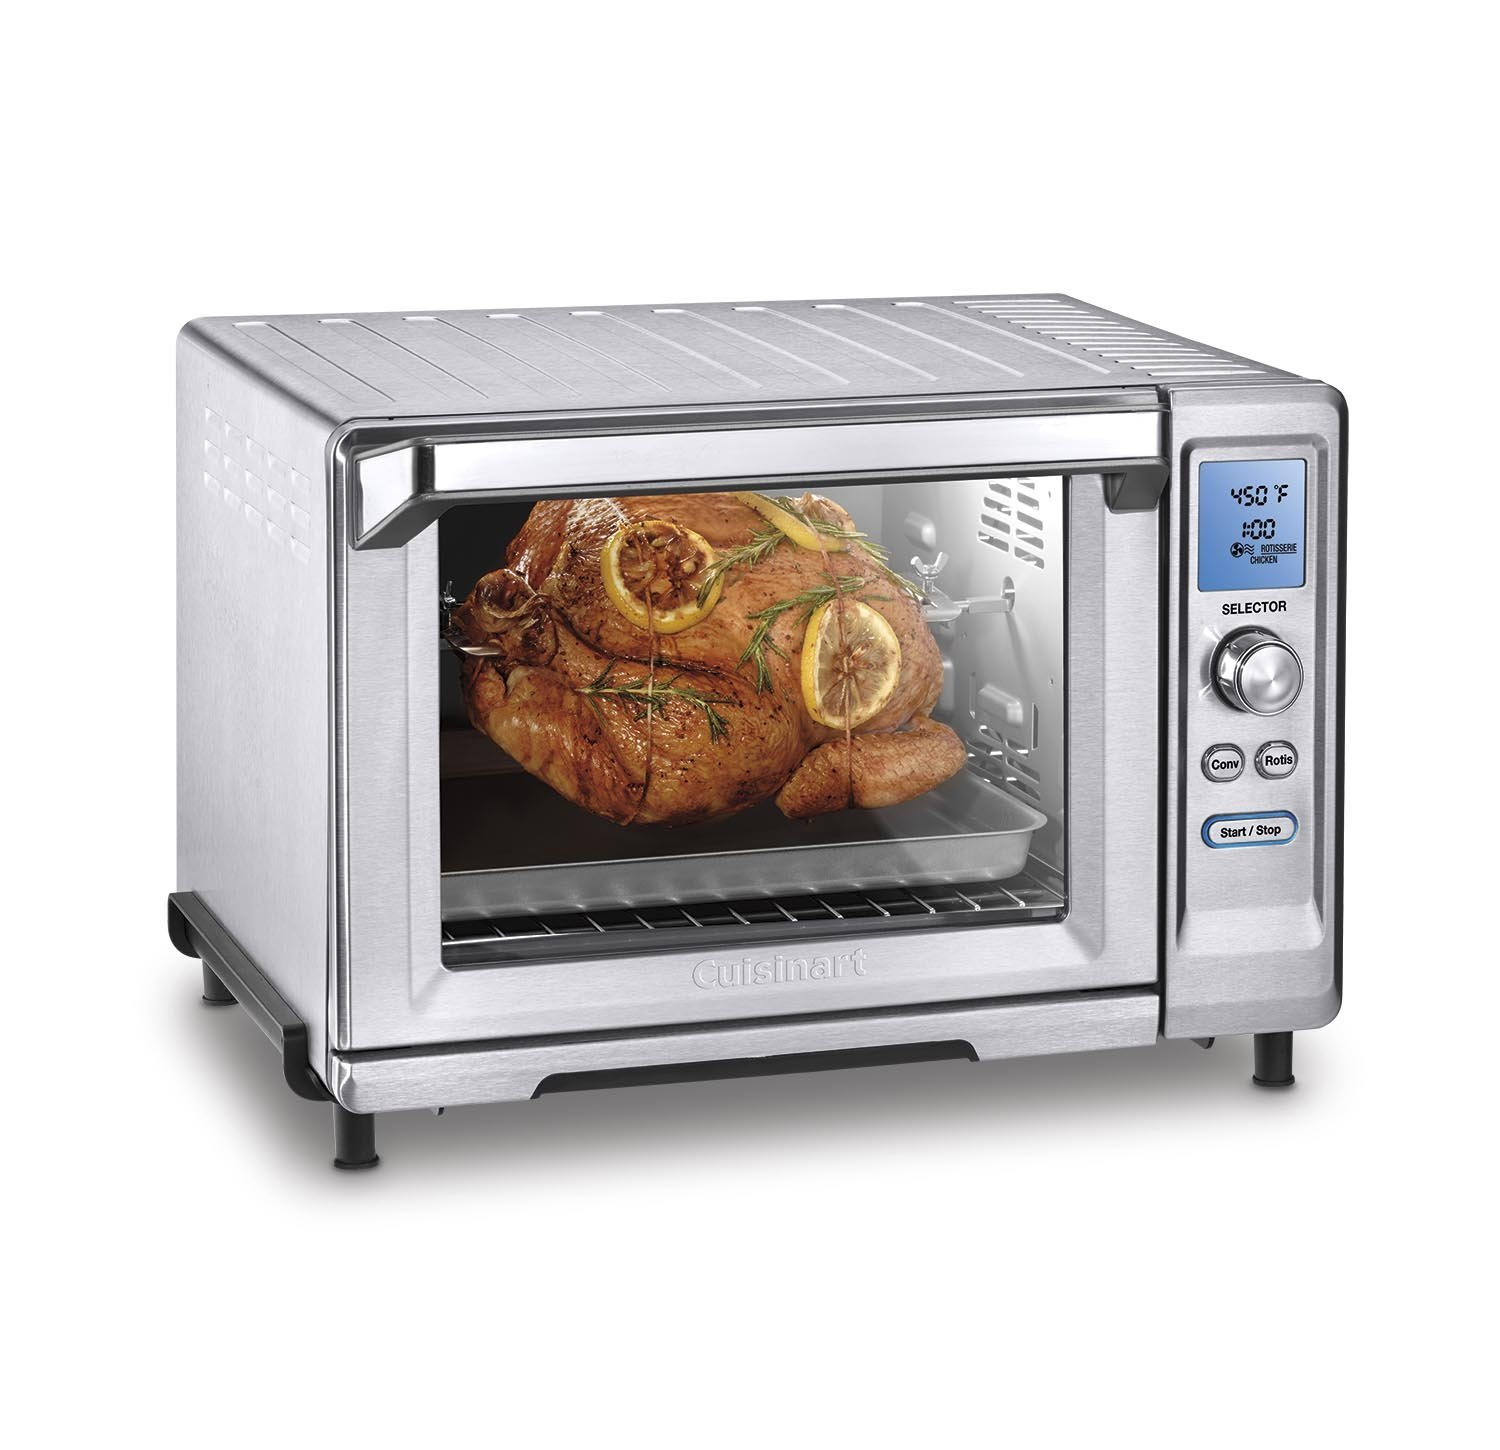 Countertop Convection Oven With Burners On Top : Cuisinart TOB-200 Rotisserie Convection Toaster Oven Review